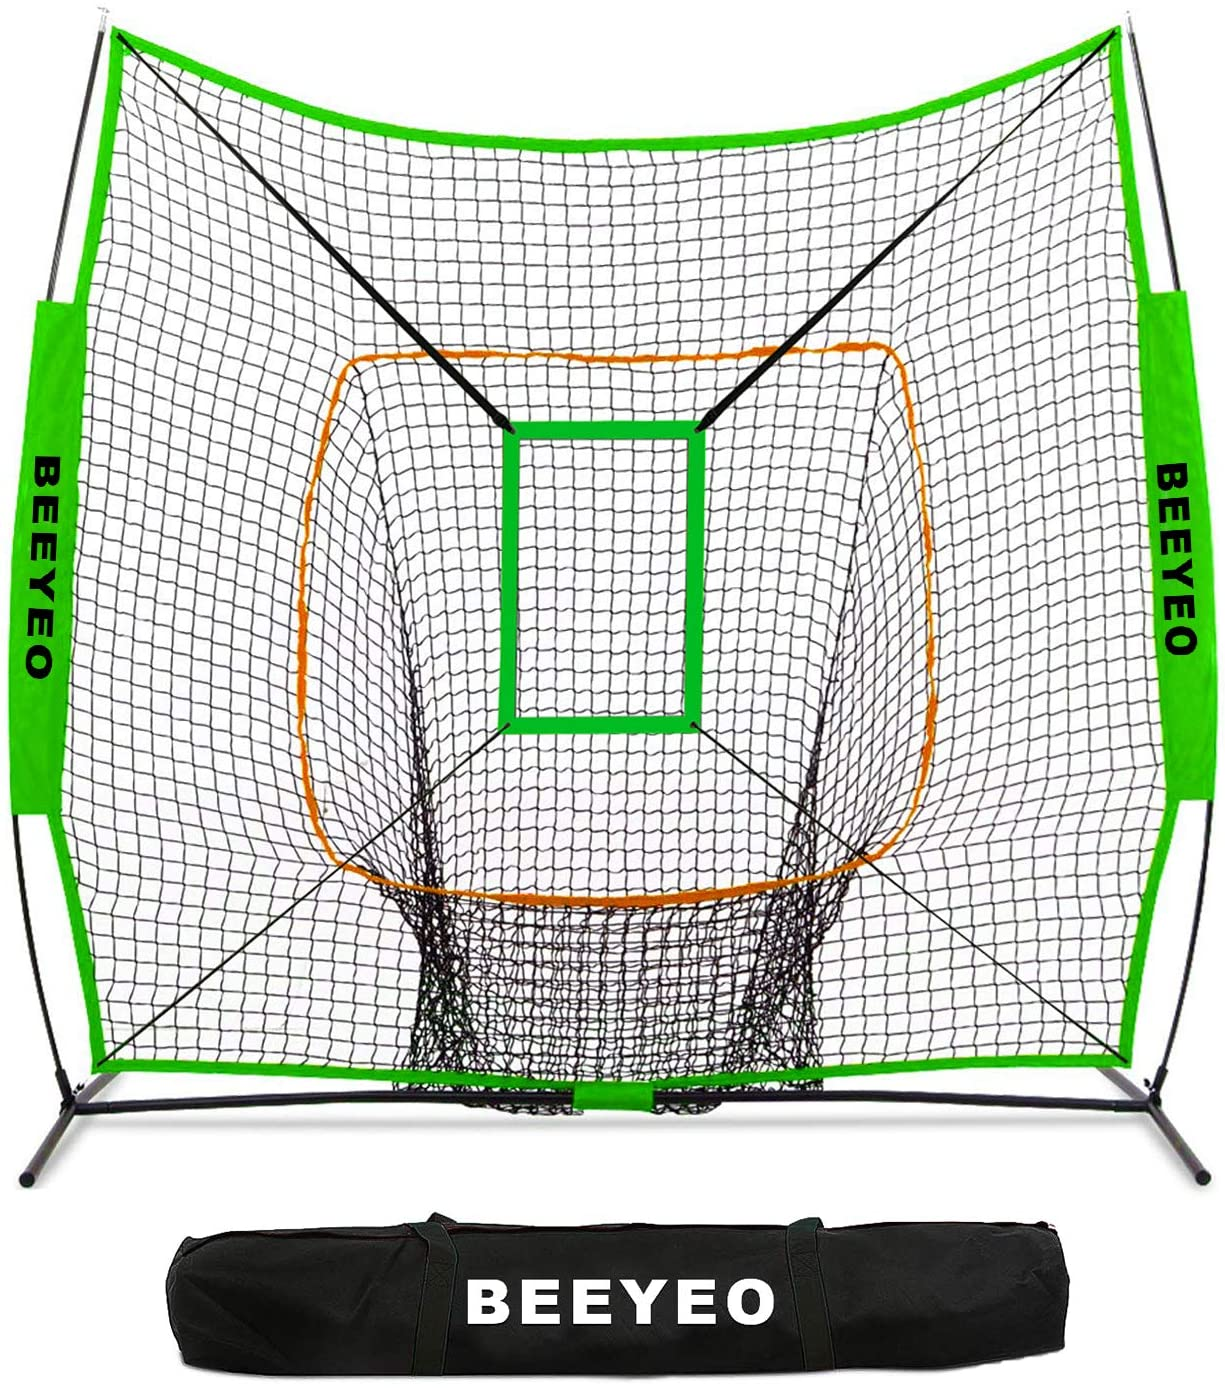 BEEYEO Baseball & Softball Net for Hitting & Pitching | Heavy Duty 7x7 Pro Series | Indoor & Outdoor Training Net | Bow Frame + Bonus Strike Zone Included